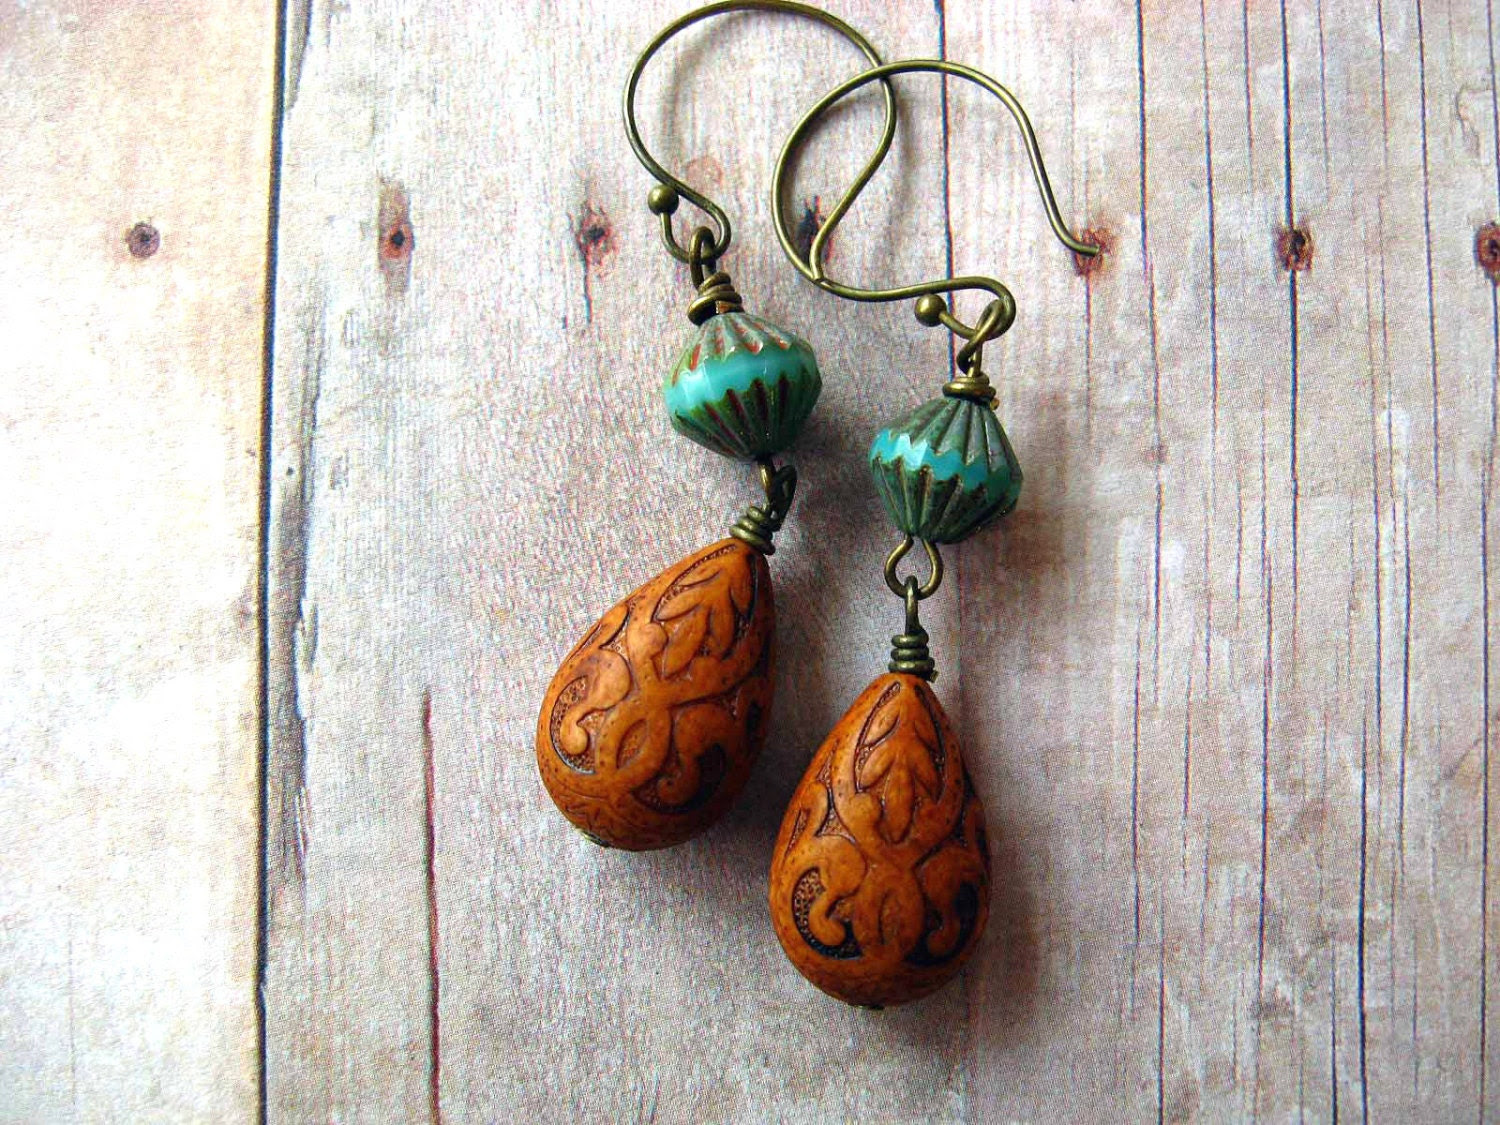 Terracotta and Turquoise  Earrings - Earth Brown Dangles - Vintage Lucite Teardrops - Czech Glass - Gift Box - Under 25 - MySelvagedLife